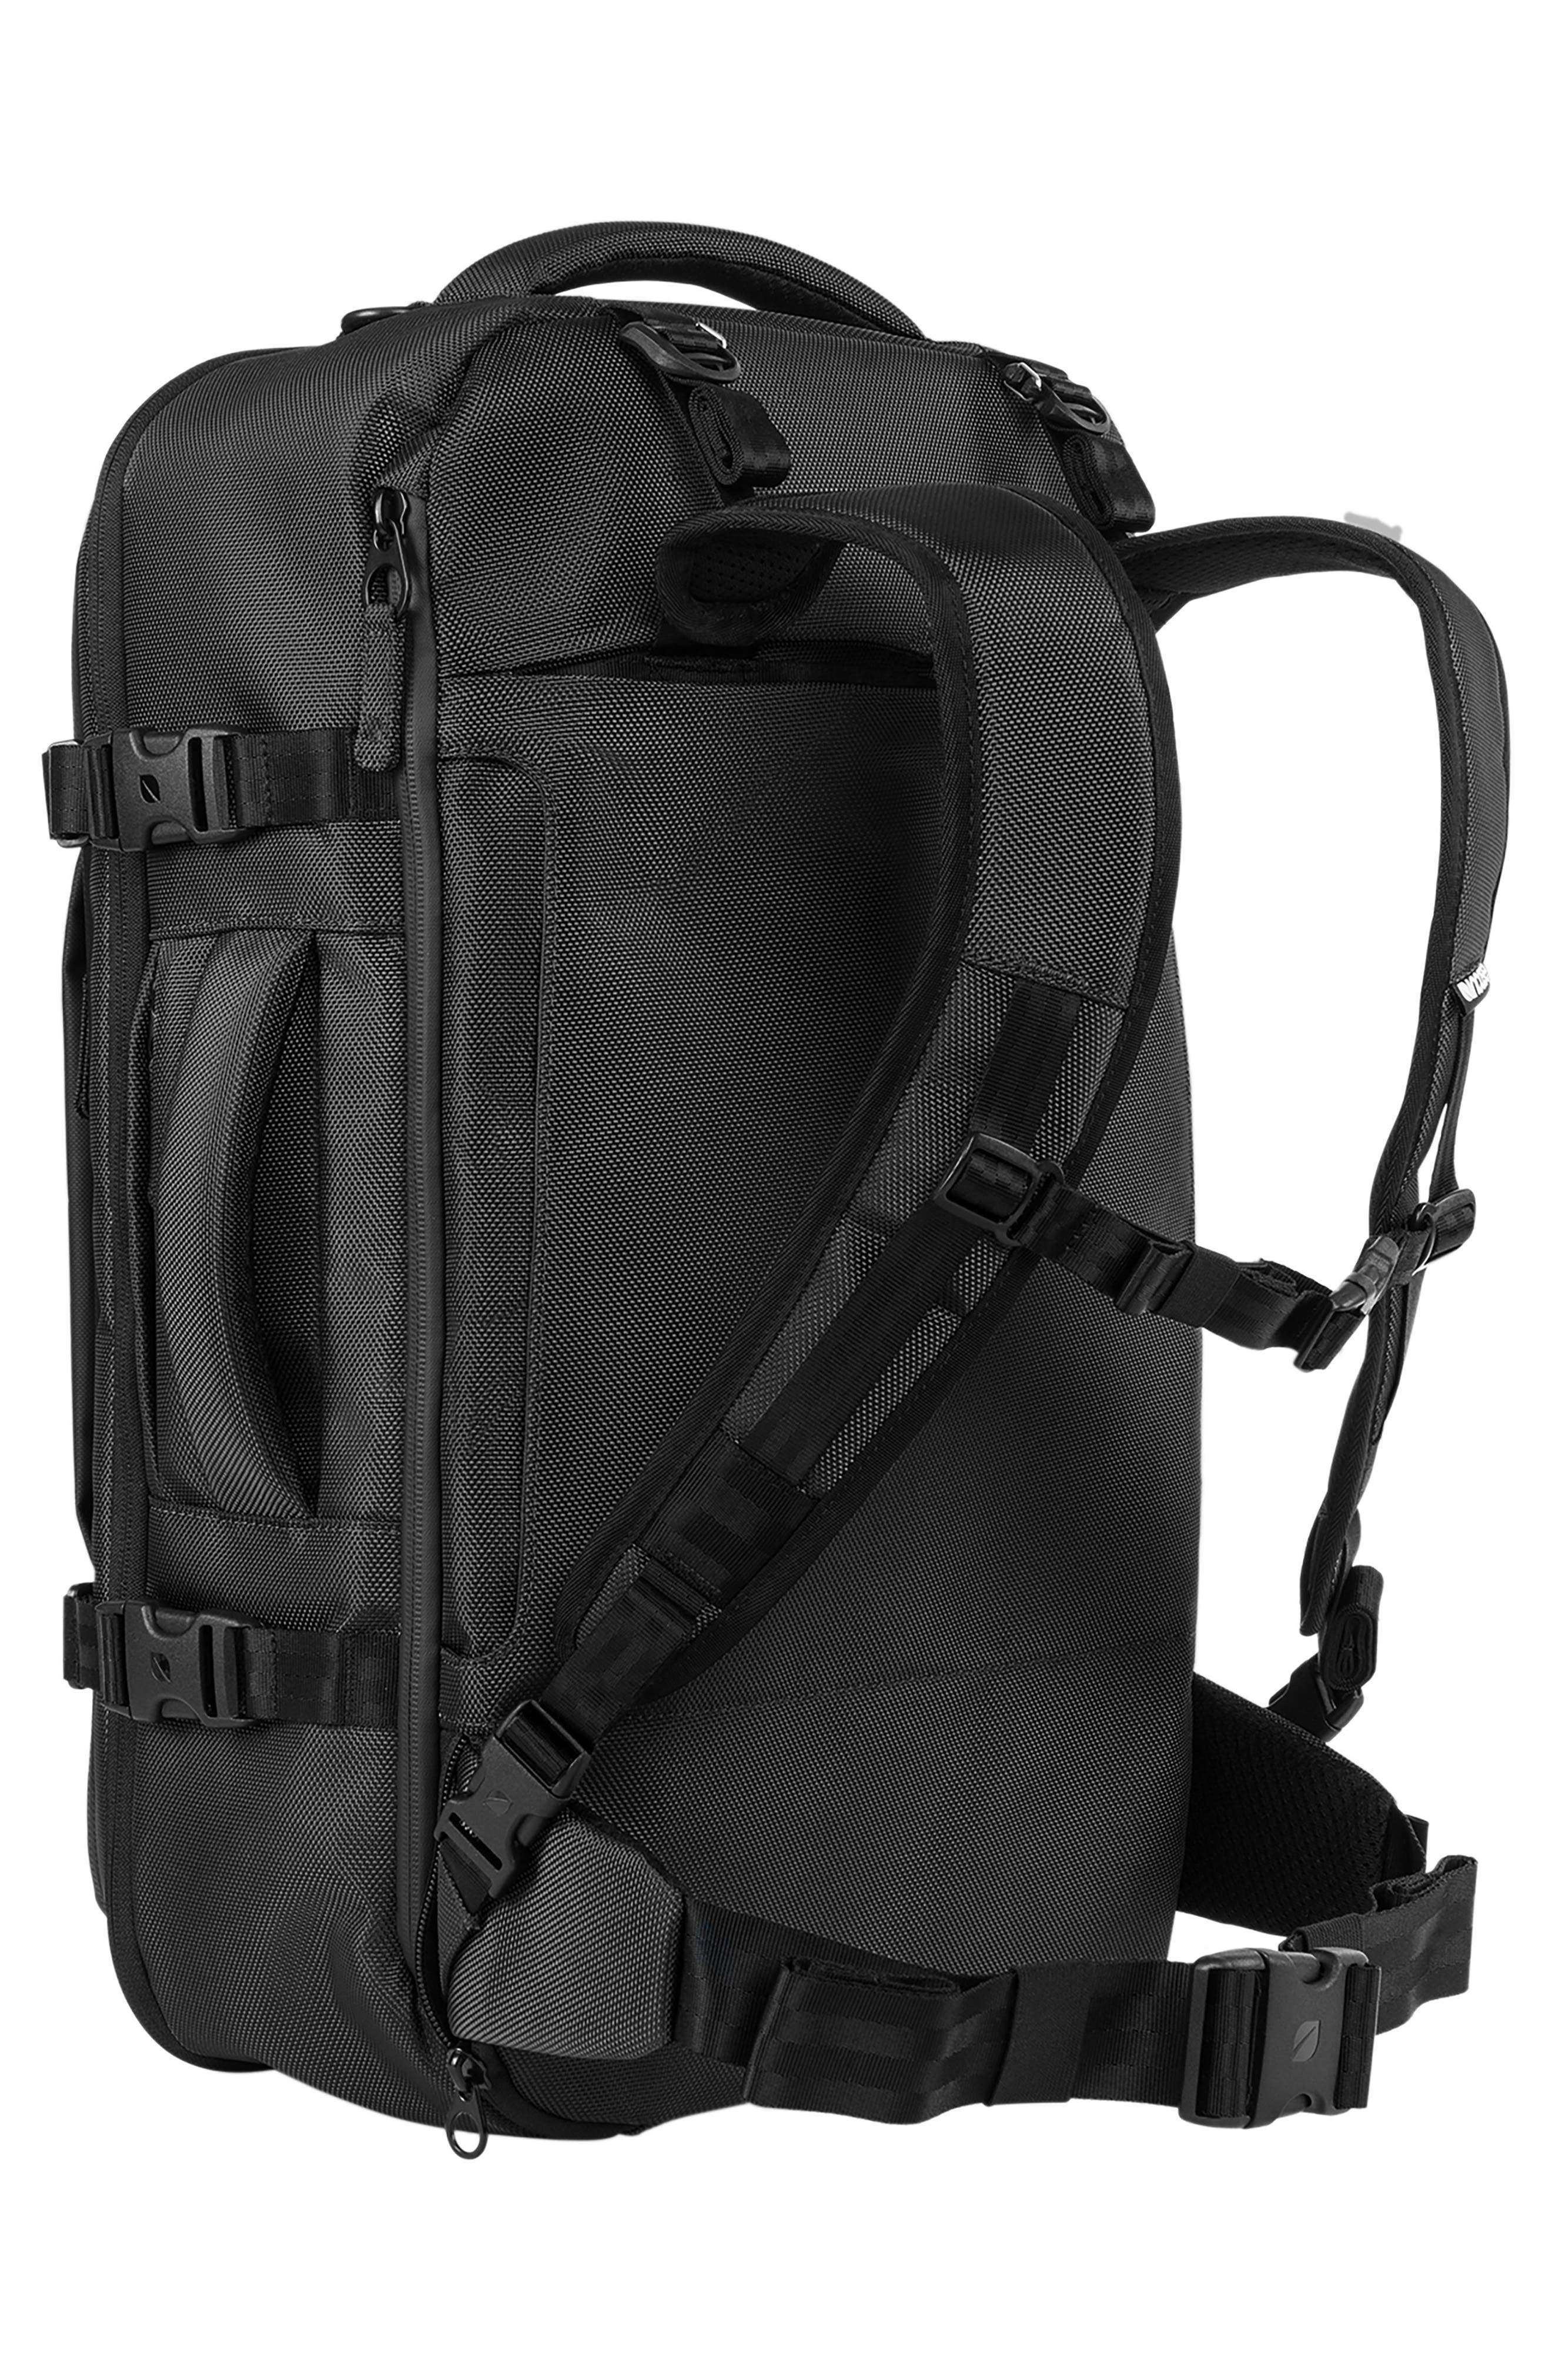 TRACTO Convertible Backpack,                             Alternate thumbnail 4, color,